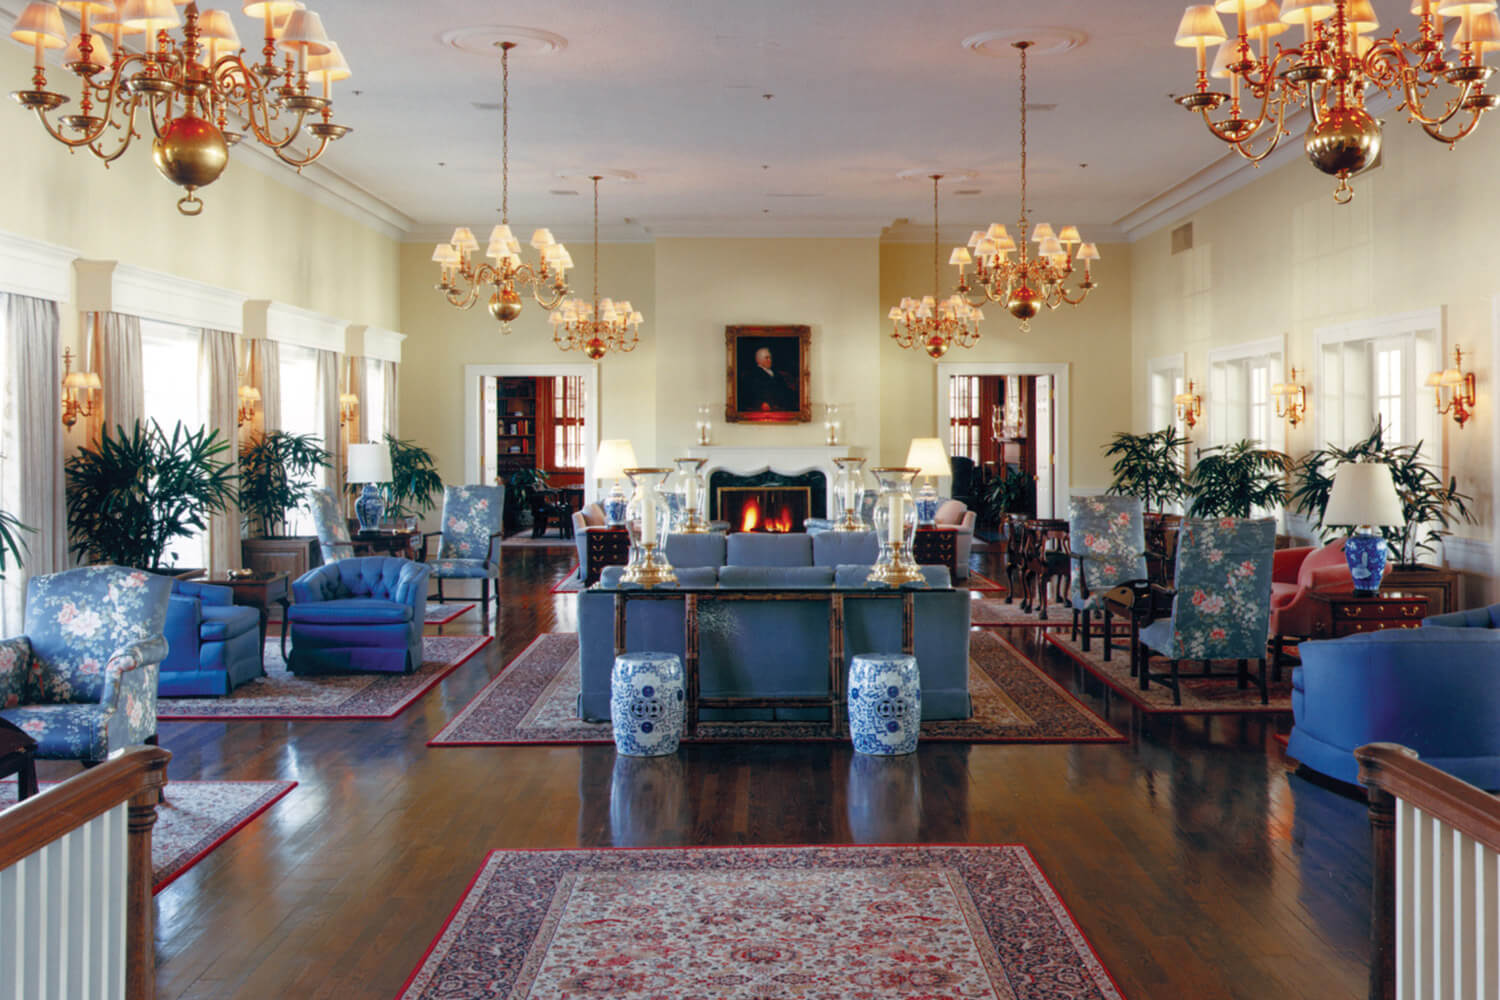 Westmoreland Country Club interior